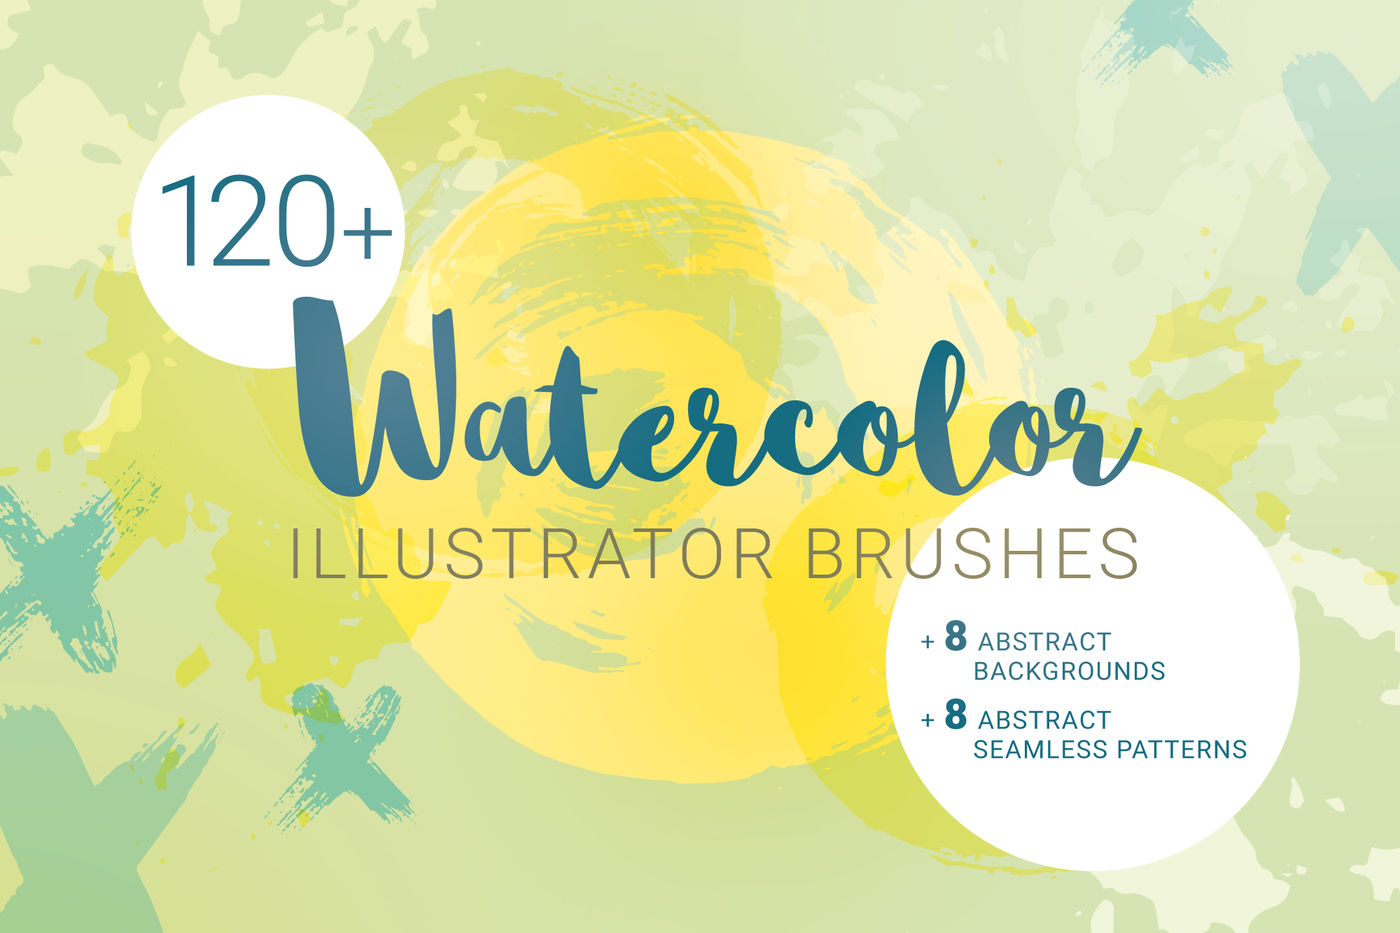 watercolor brush illustrator - Jasonkellyphoto co